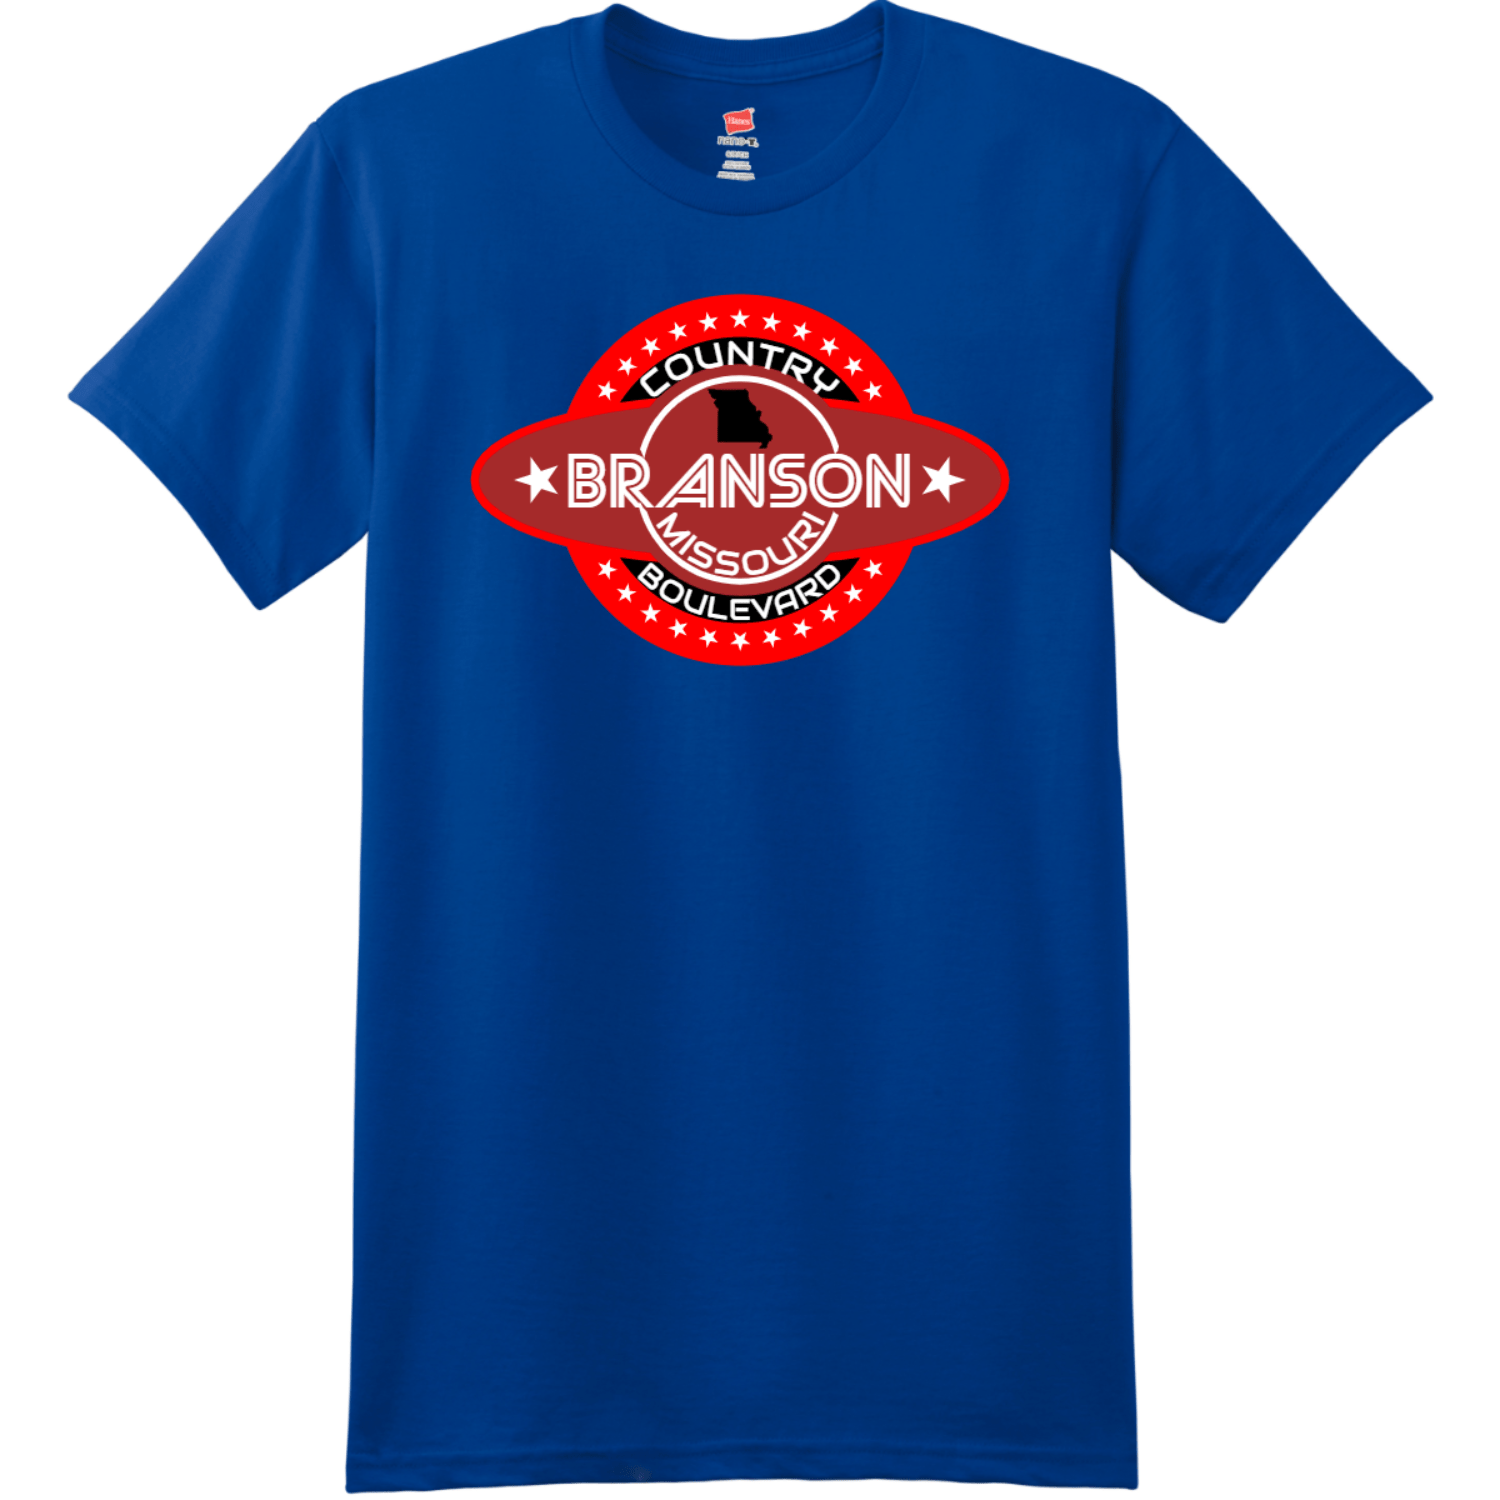 Branson Missouri Country Boulevard T Shirt Deep Royal Hanes Nano 4980 Ringspun Cotton T Shirt